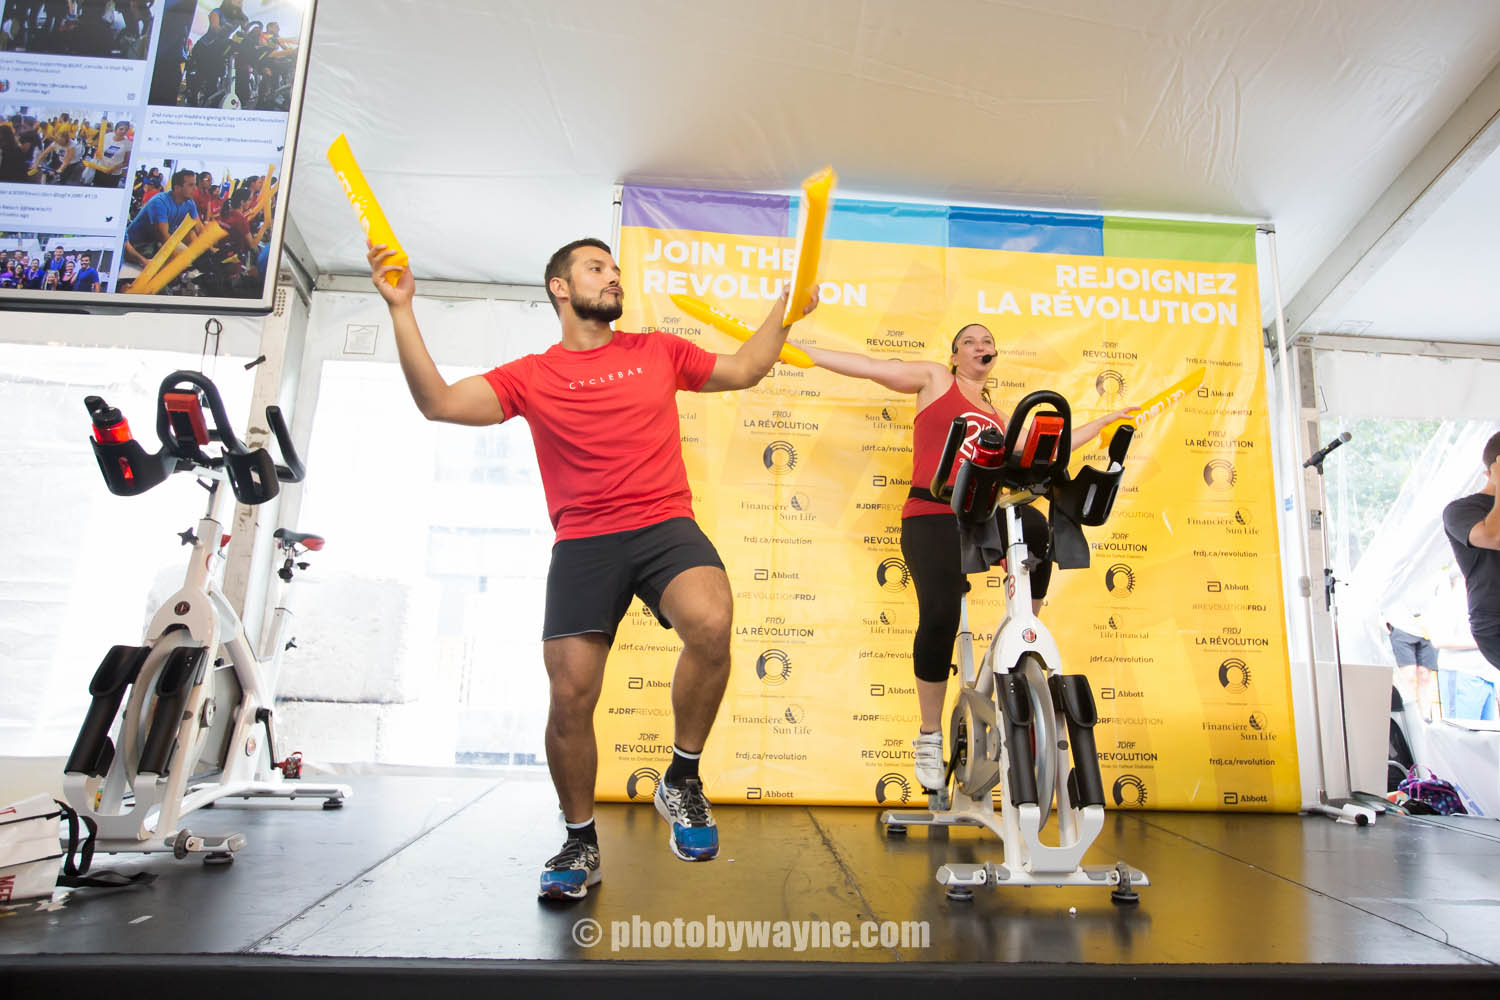 30-JDRF-Toronto-charity-ride-cyclebar-on-stage.jpg